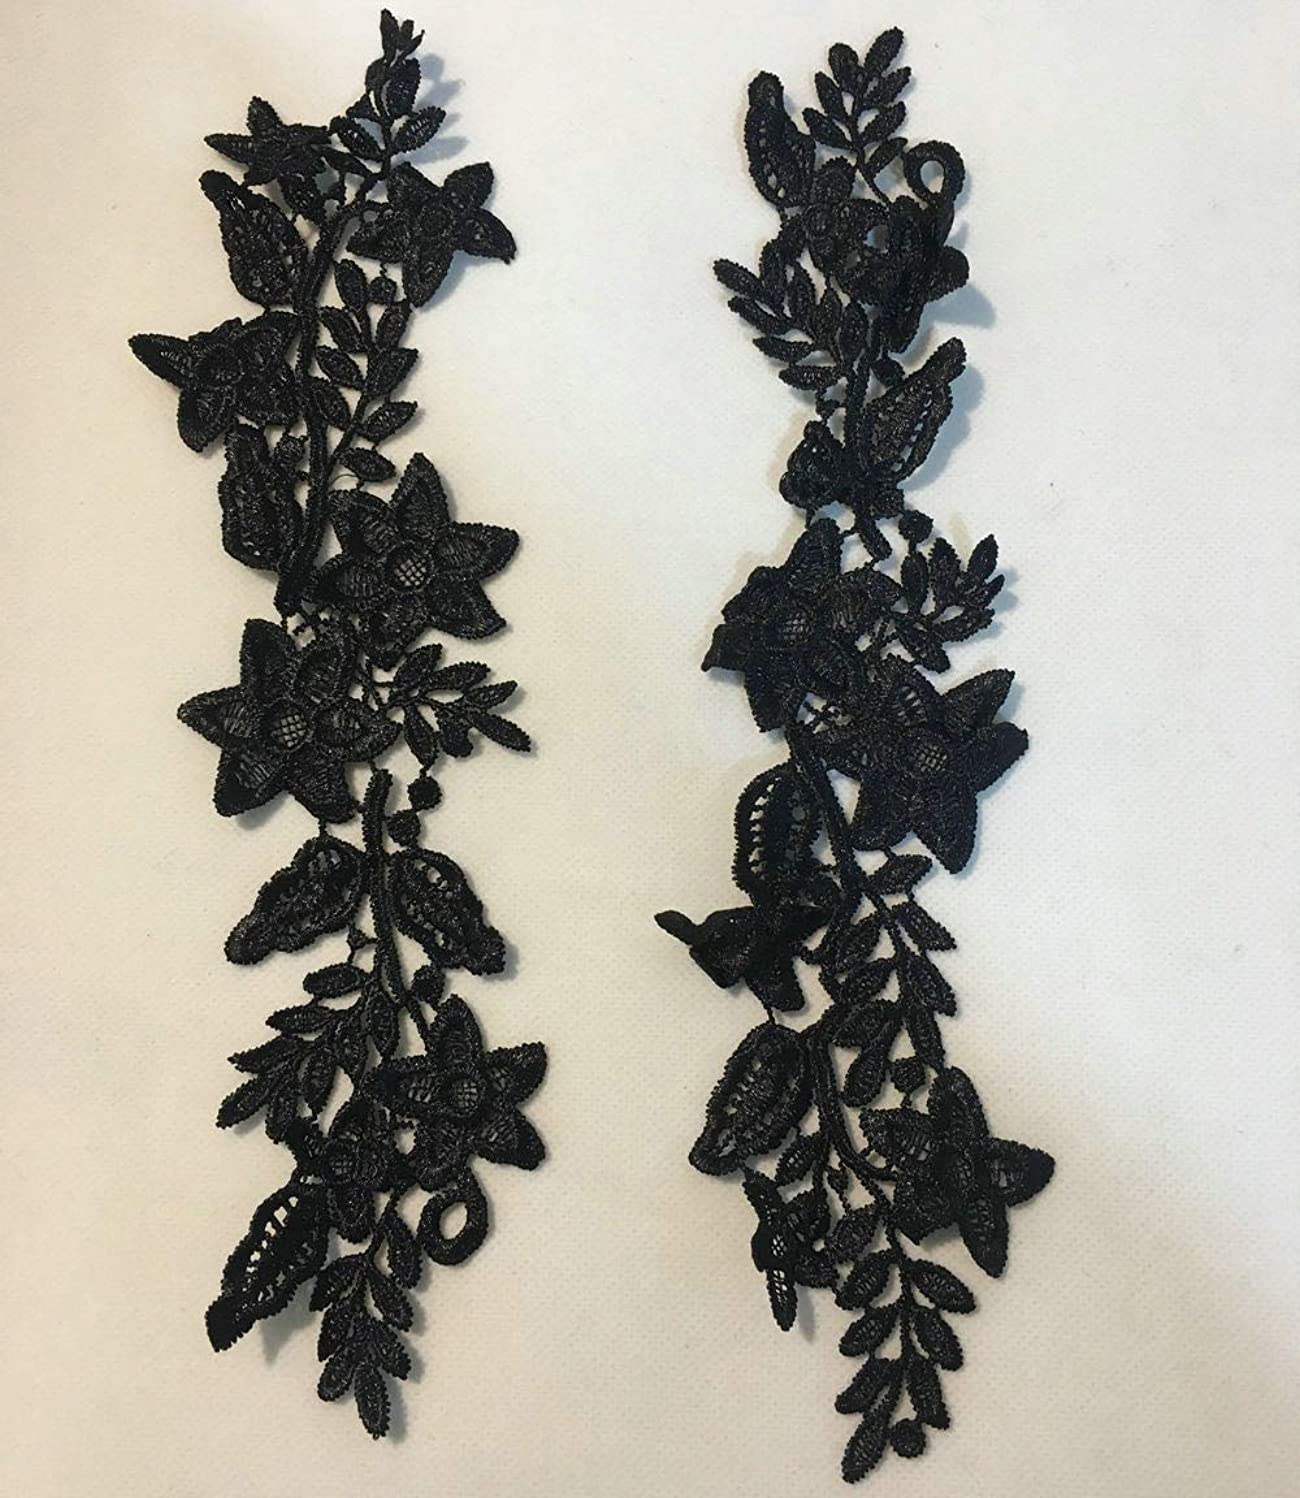 1 Pair Beautiful Black Flower Embroidery Patch Neckline Lace Applique Trims Collars Sewing DIY Crafts (Style C Black)